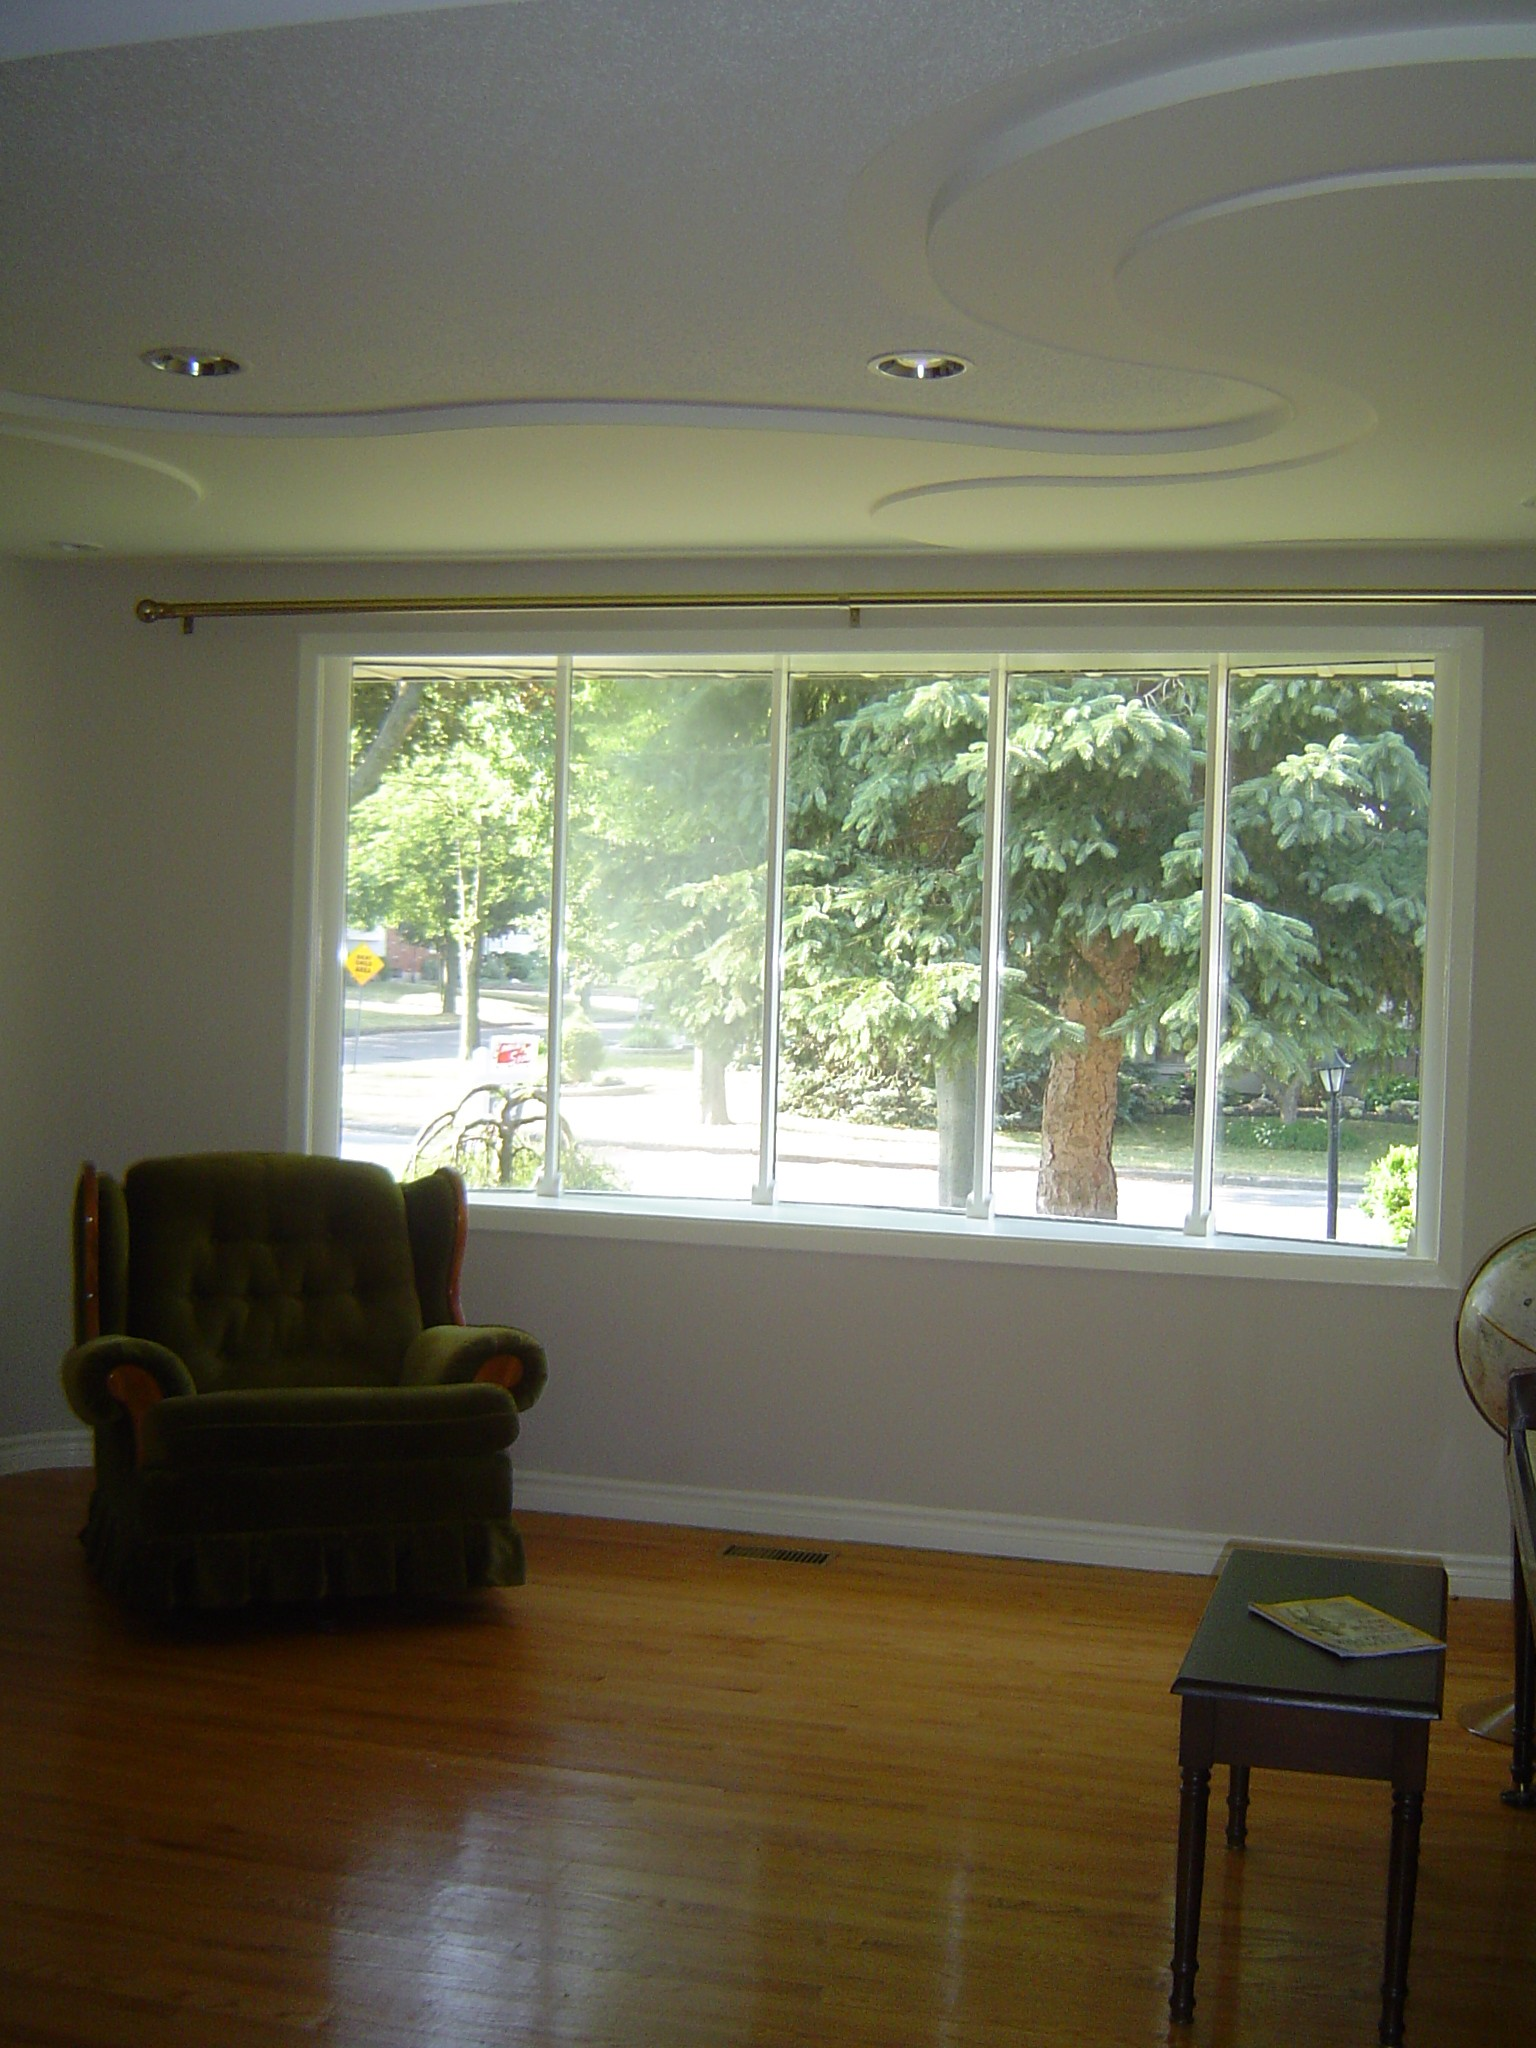 Living room with large sunny window